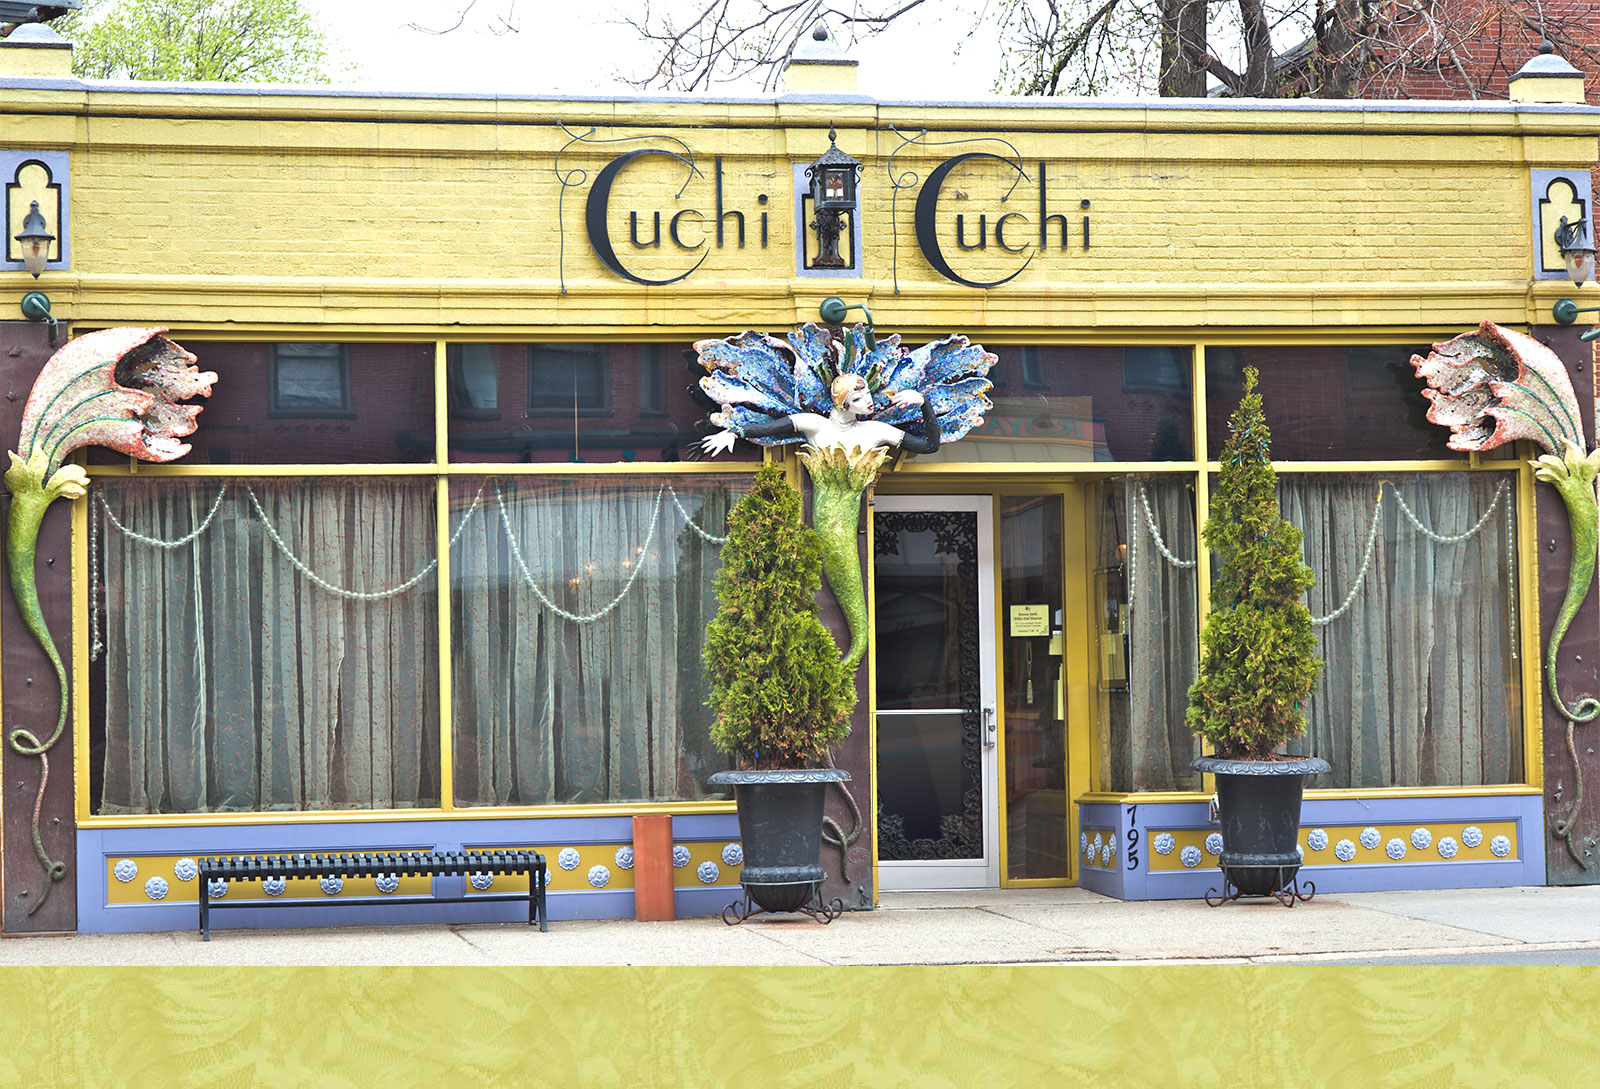 Exterior shot of Cuchi Cuchi restaurant